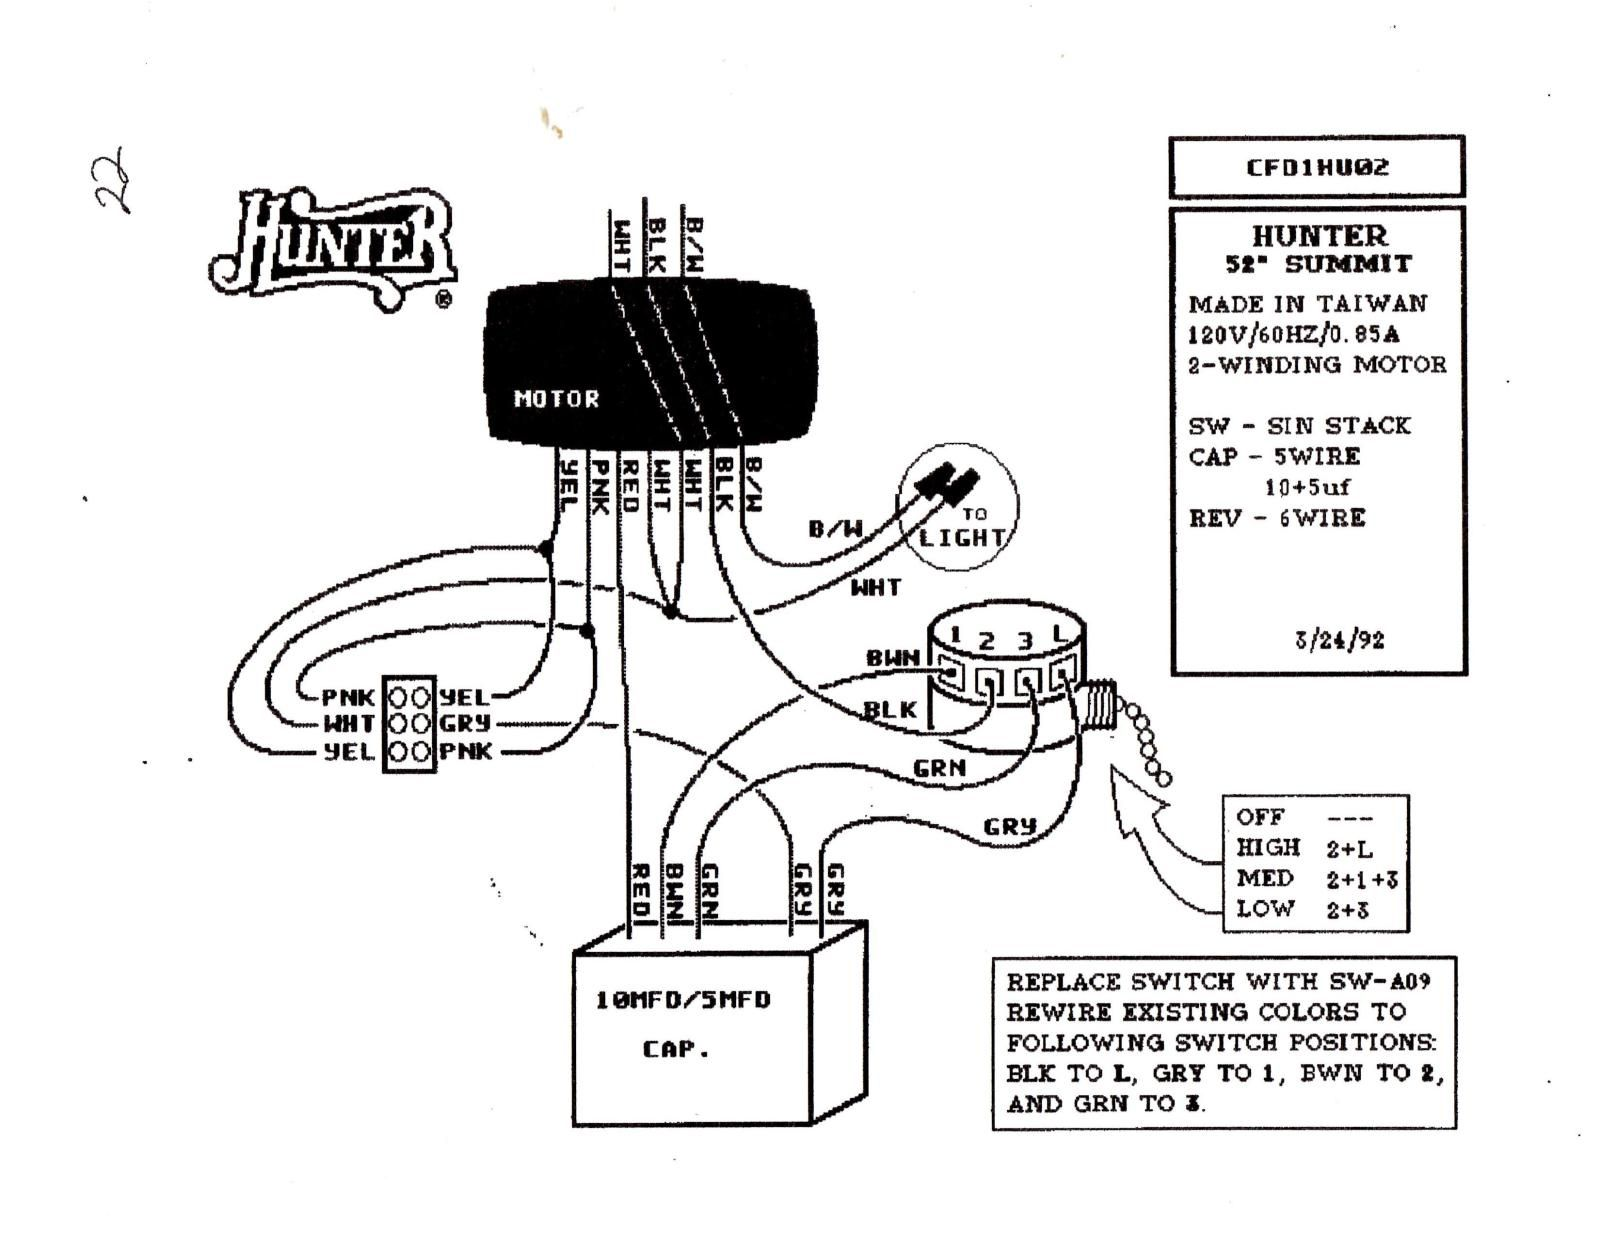 hunter ceiling fan speed switch wiring diagram switch in 2019 Hunter Fan Wiring Diagram